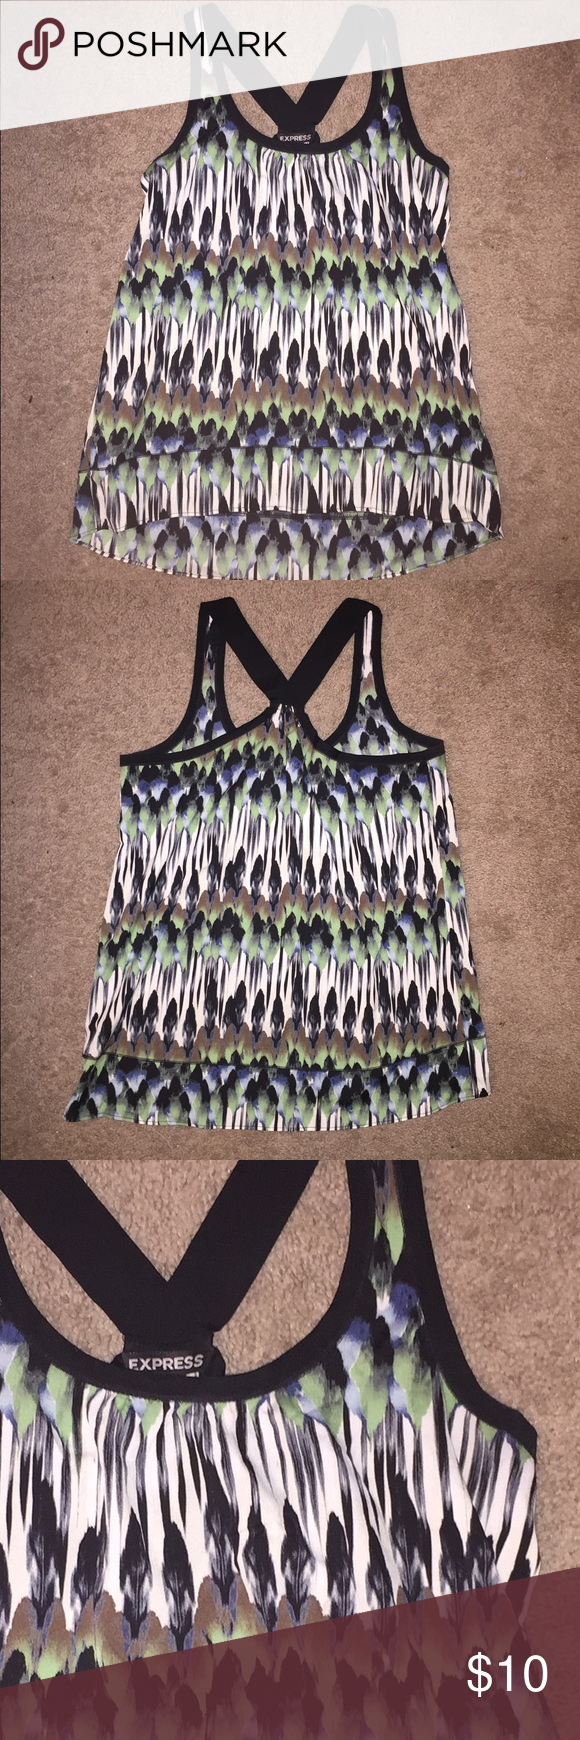 Express tank top Tank top. Great condition. Worn once. Watercolor print. Express Tops Tank Tops